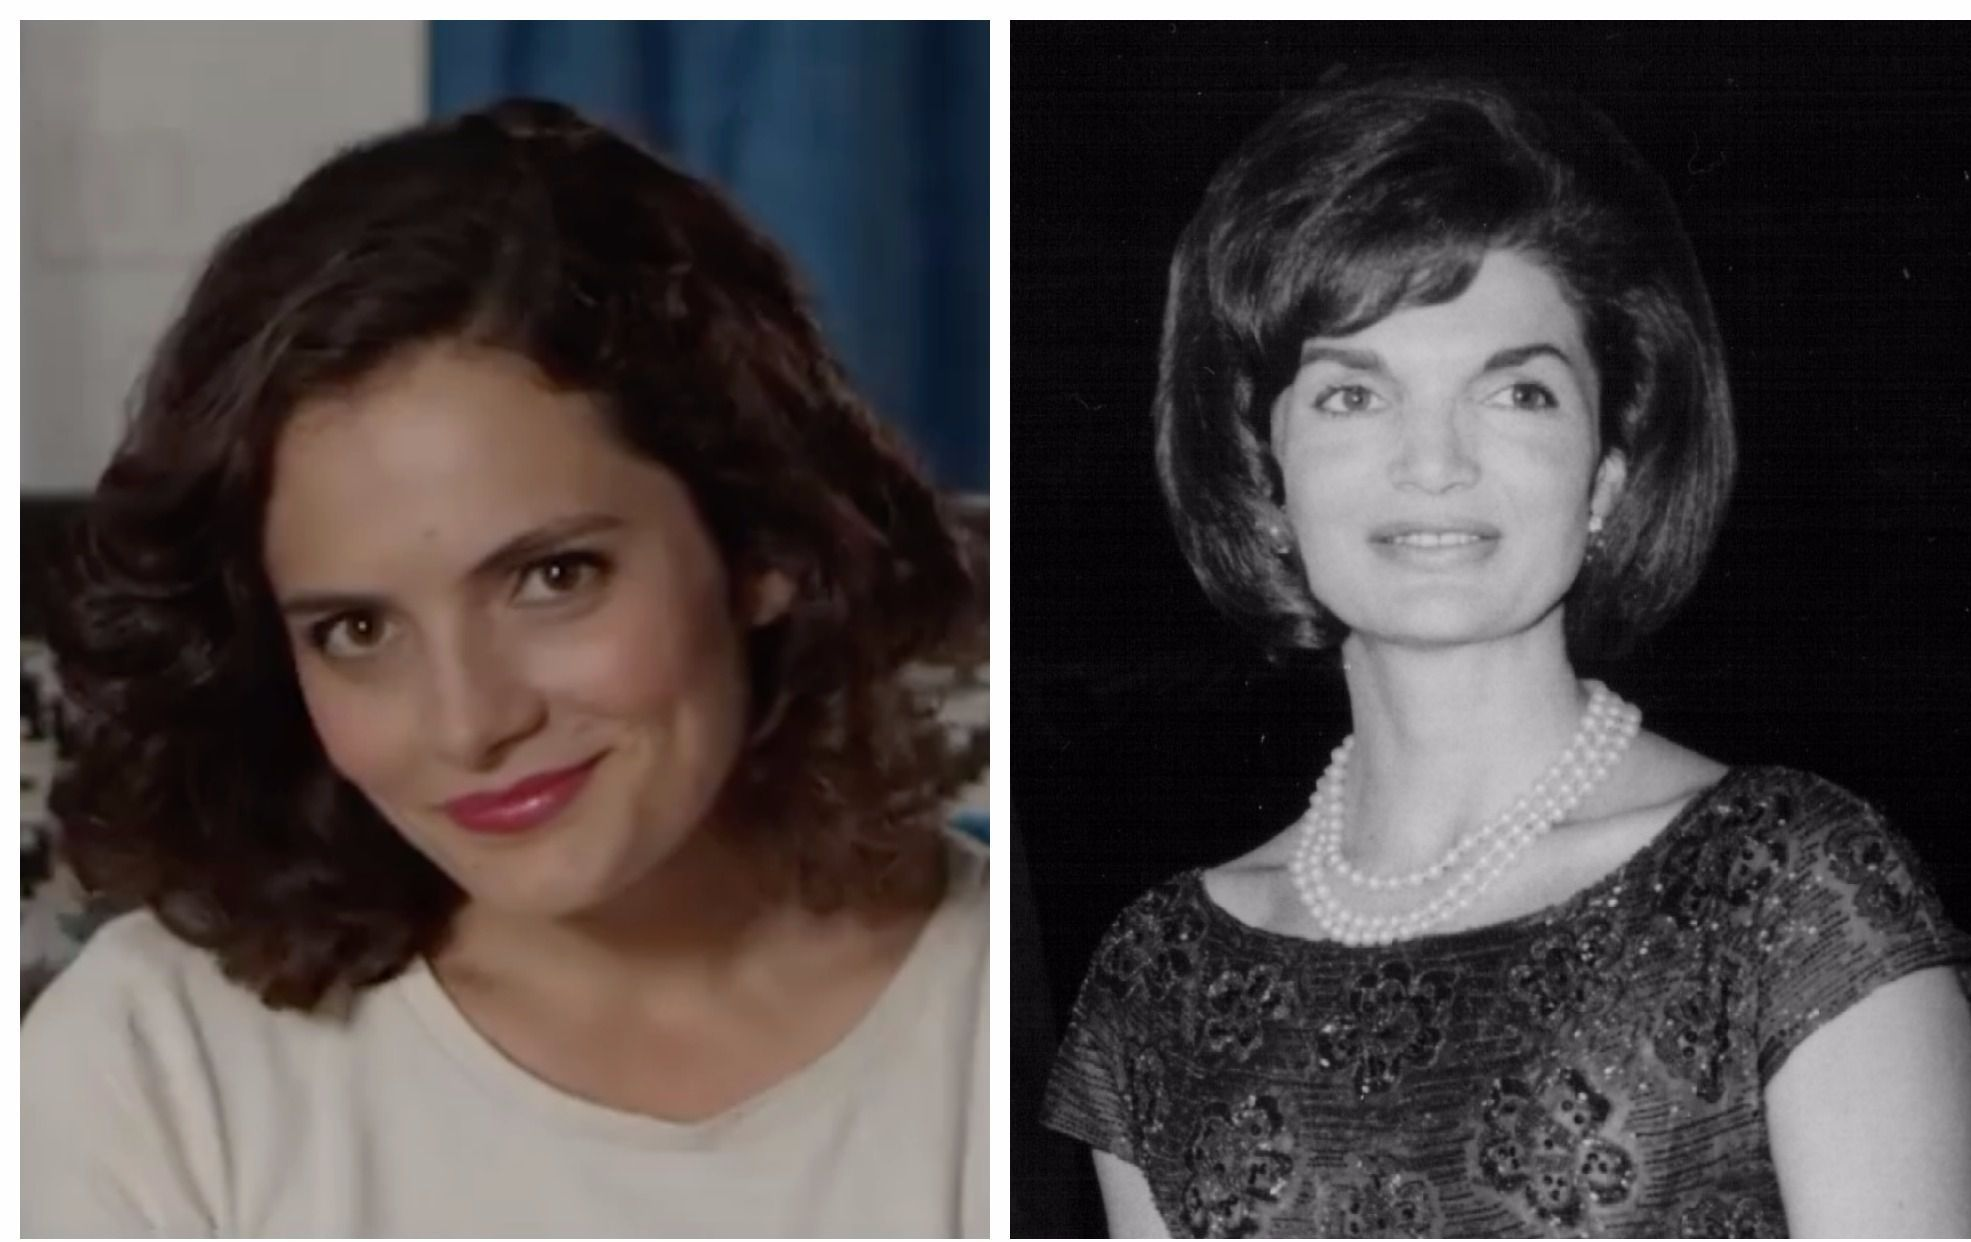 Jackie kennedys jewish granddaughter launches web comedy series jackie kennedys jewish granddaughter launches web comedy series altavistaventures Images